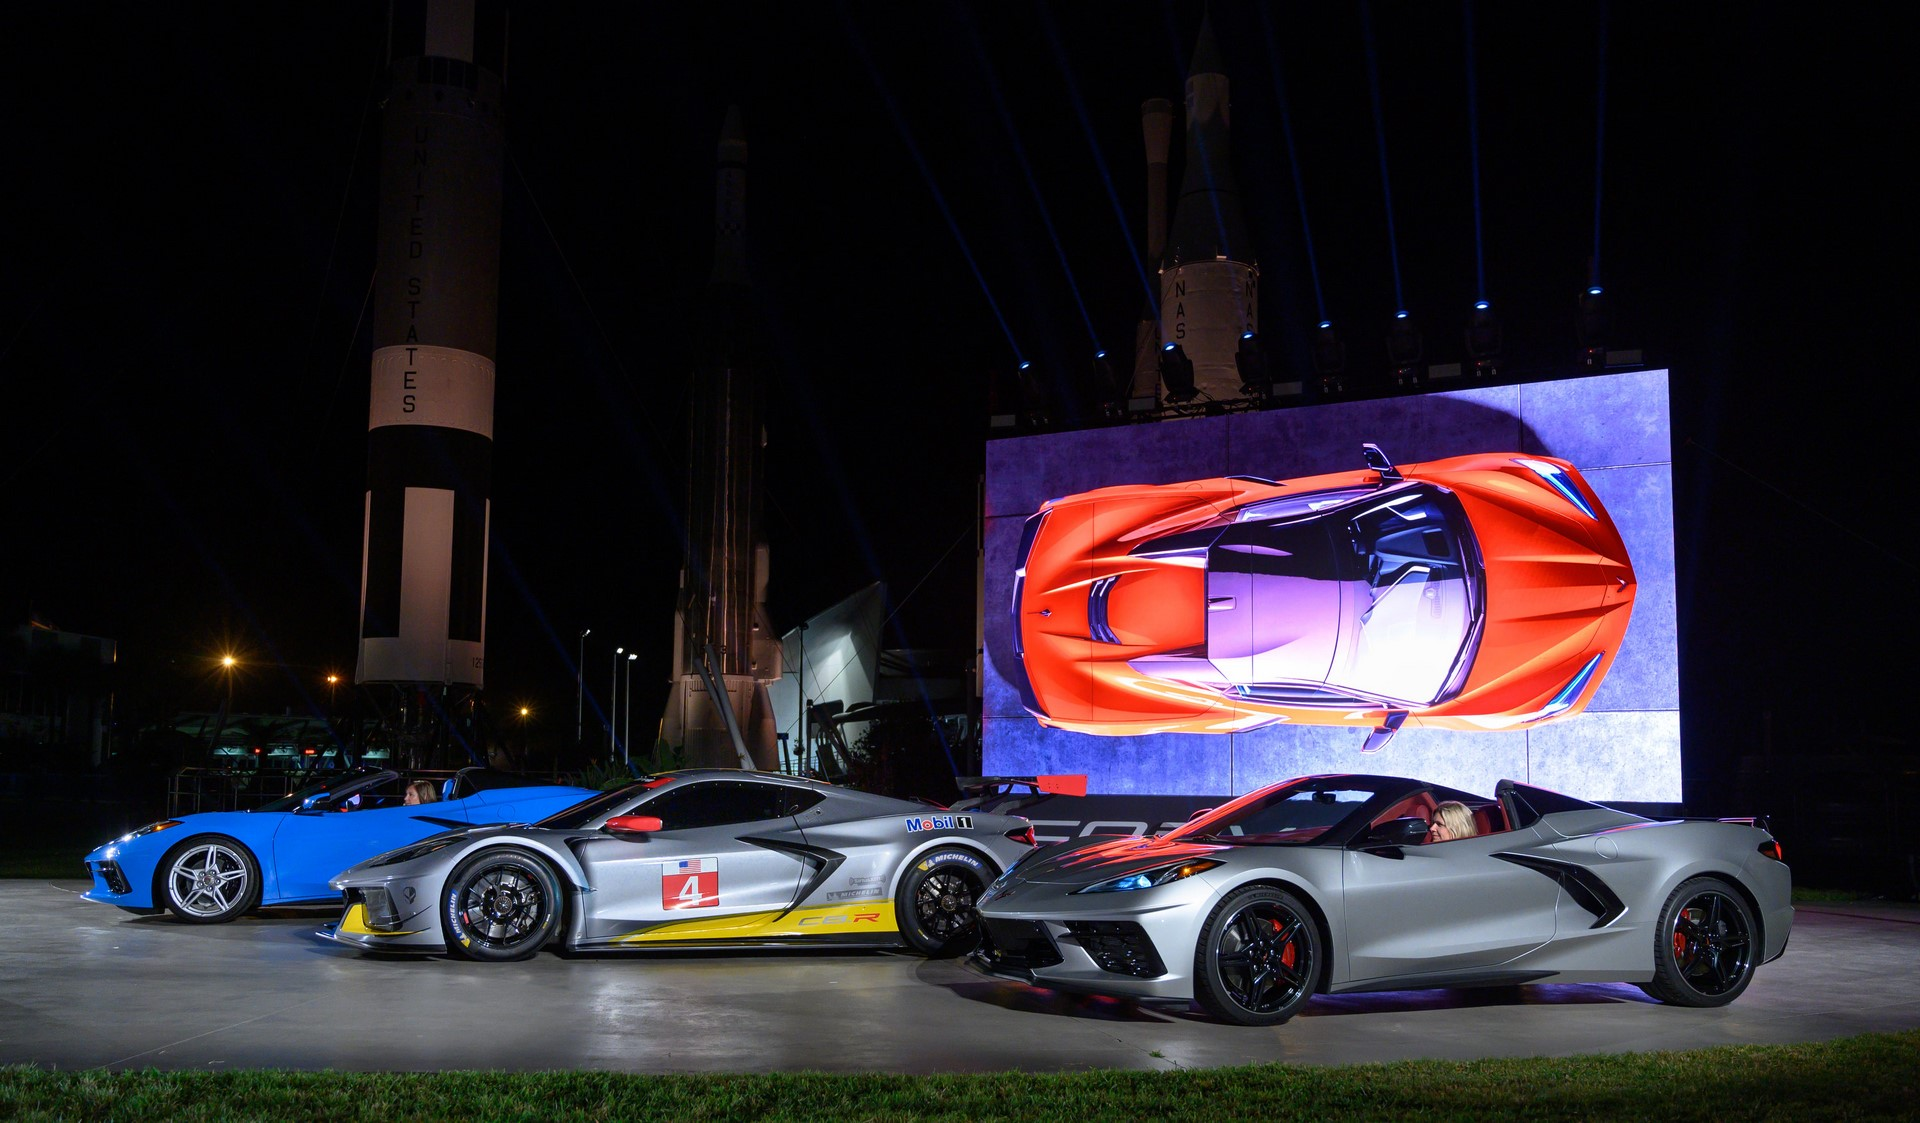 Chevrolet Corvette Stingray Convertible and Corvette C8.R Race Car